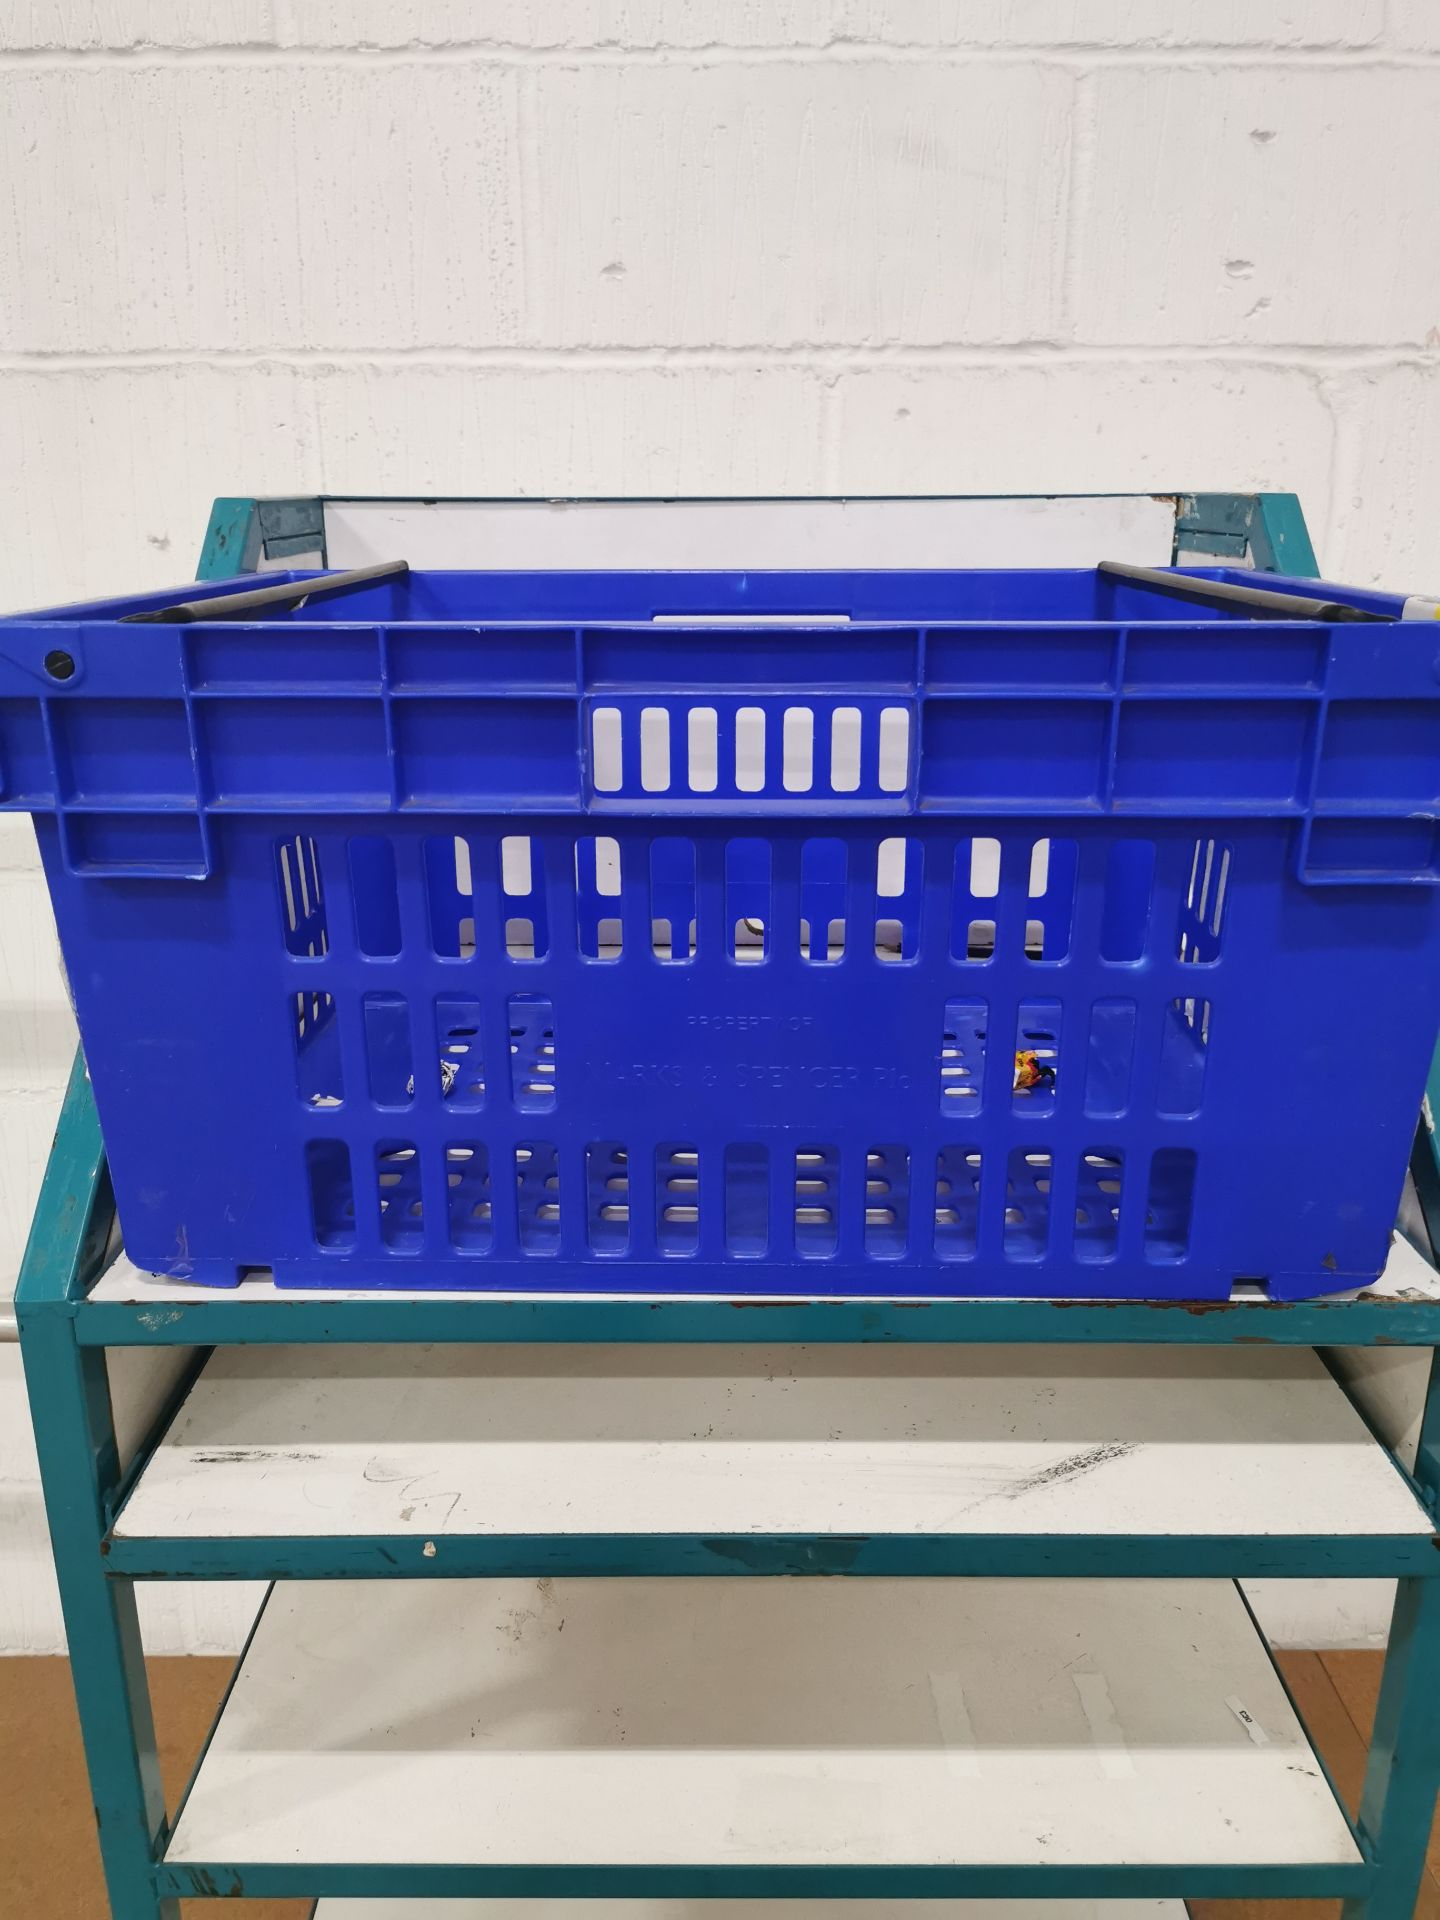 Pallet of 40 x 55Ltr Ventilated stacking & nesting crates from M&S. - Image 3 of 4